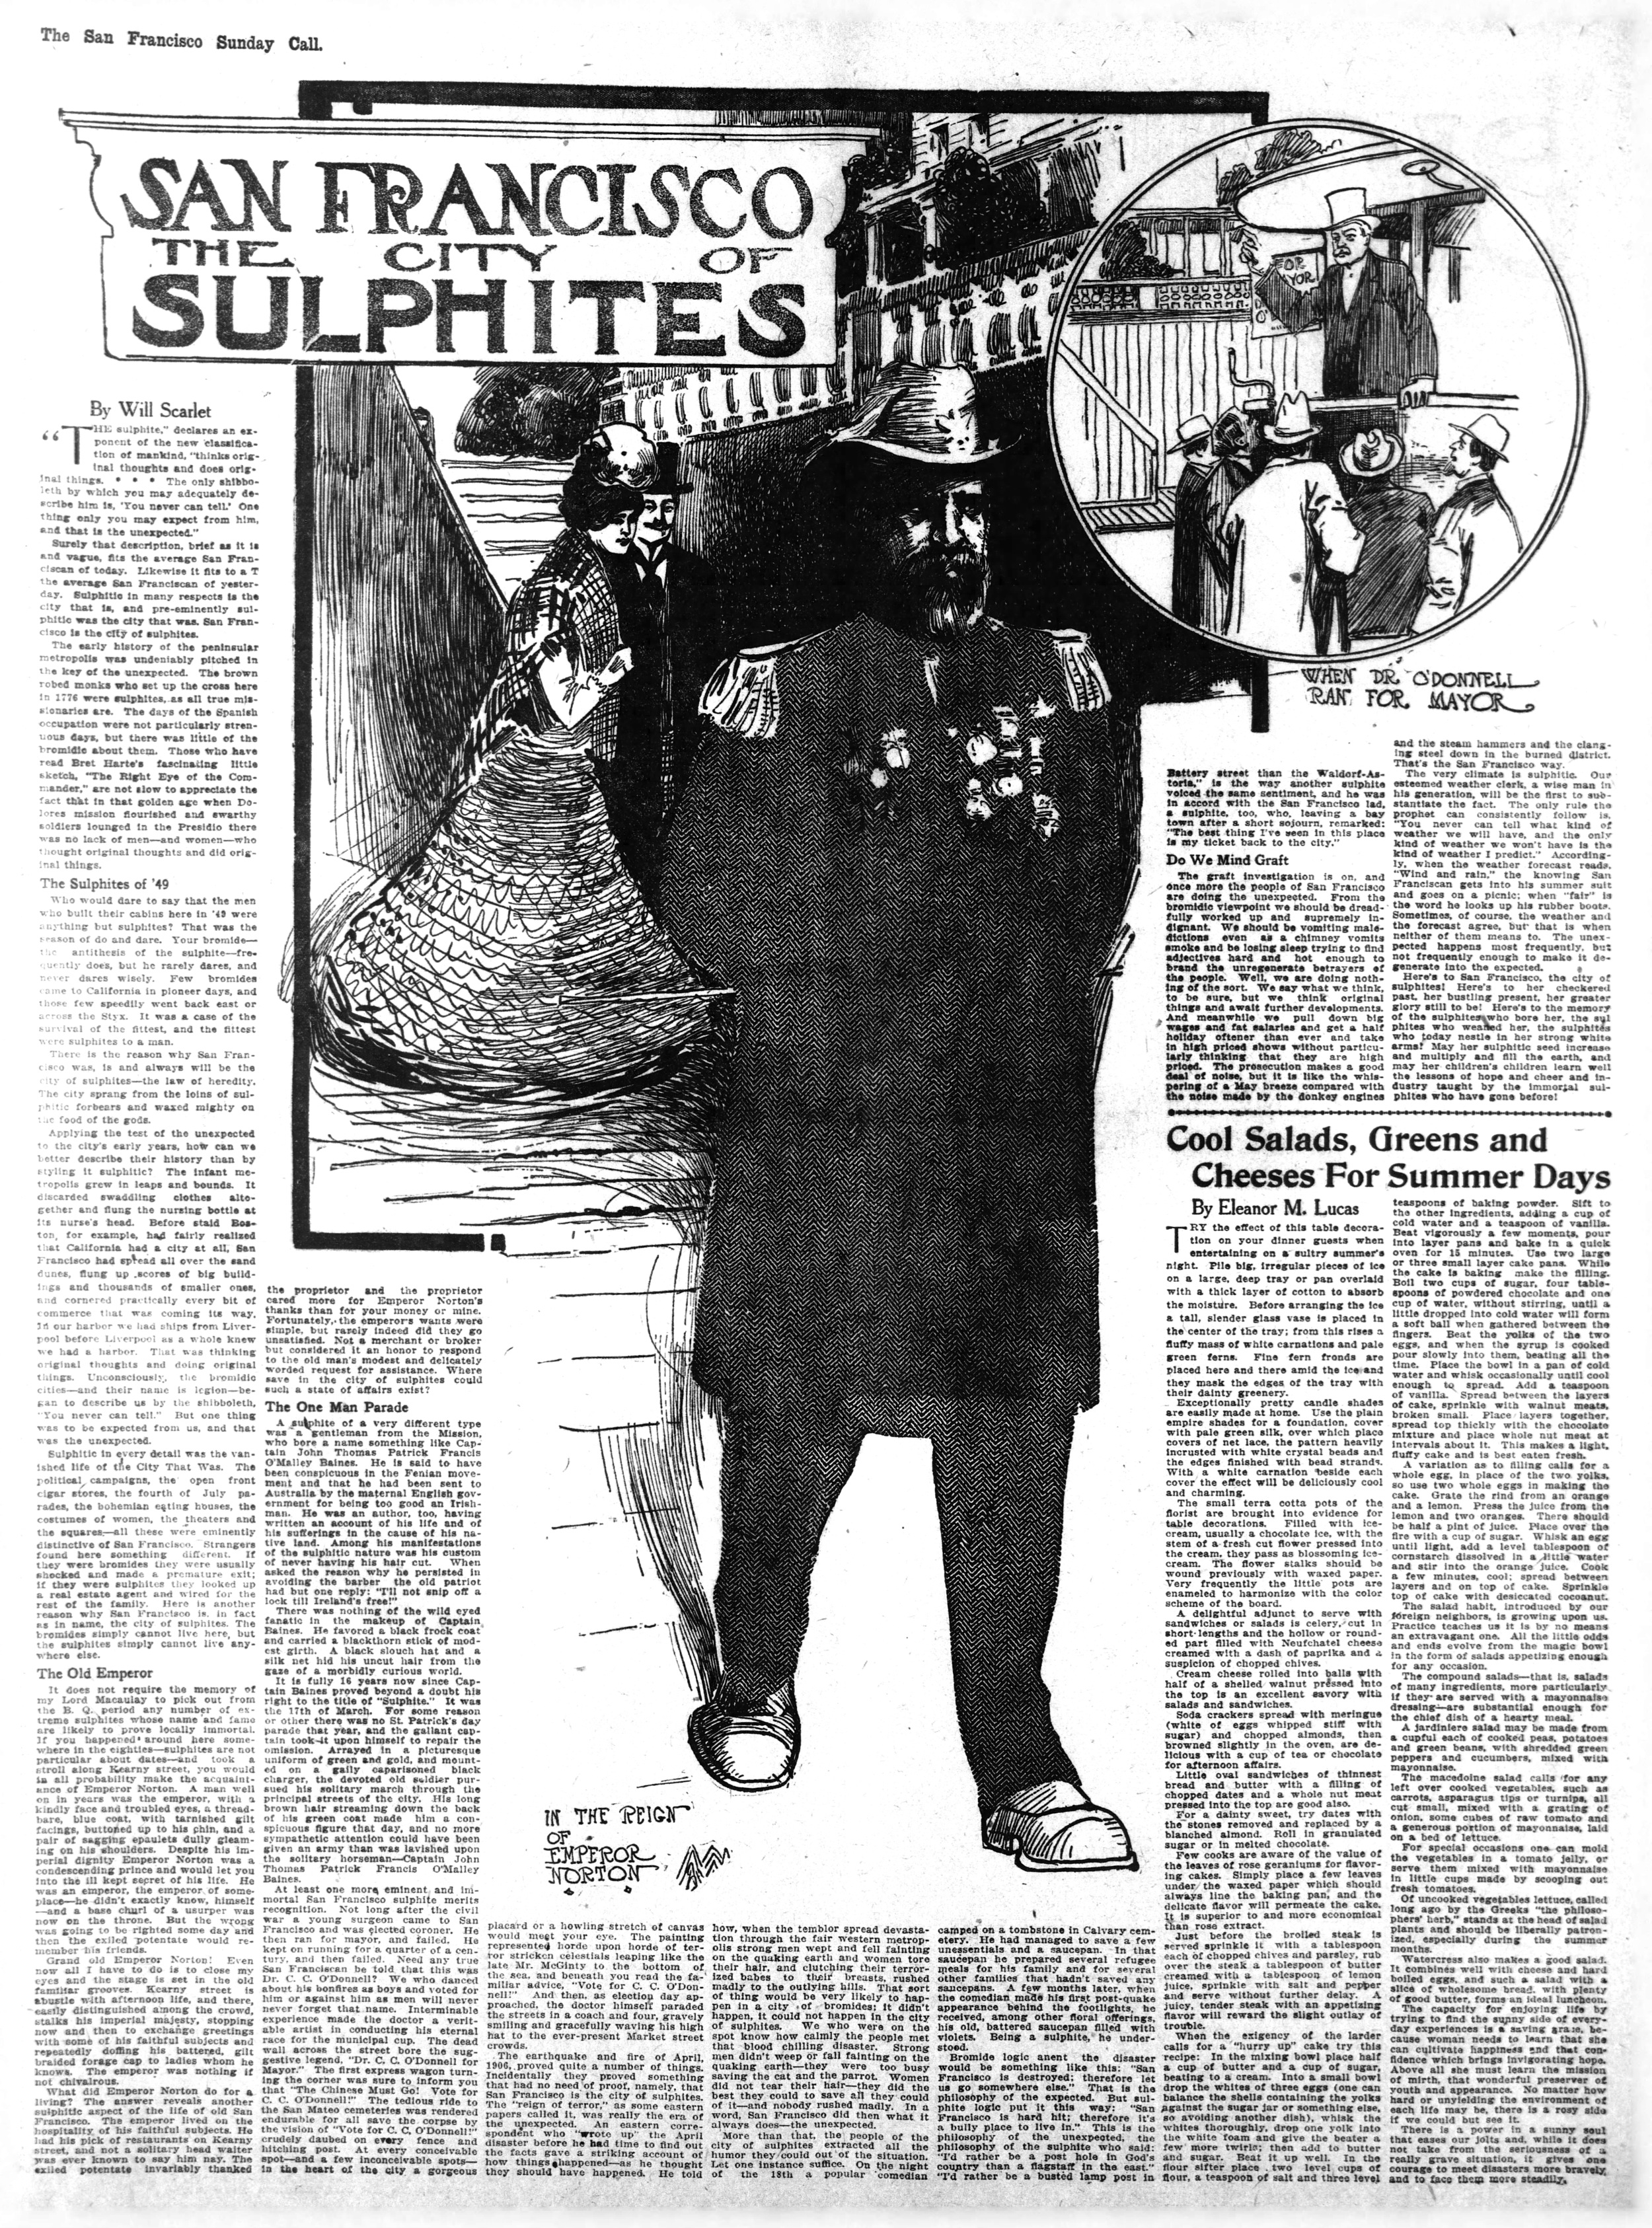 """""""In the Reign of Emperor Norton,"""" in the  San Francisco Call  newspaper of Sunday 18 August 1907.  Artwork for article, """"San Francisco: The City of Sulphites,"""" by Will Scarlet. Source:  California Digital Newspaper Collection ."""